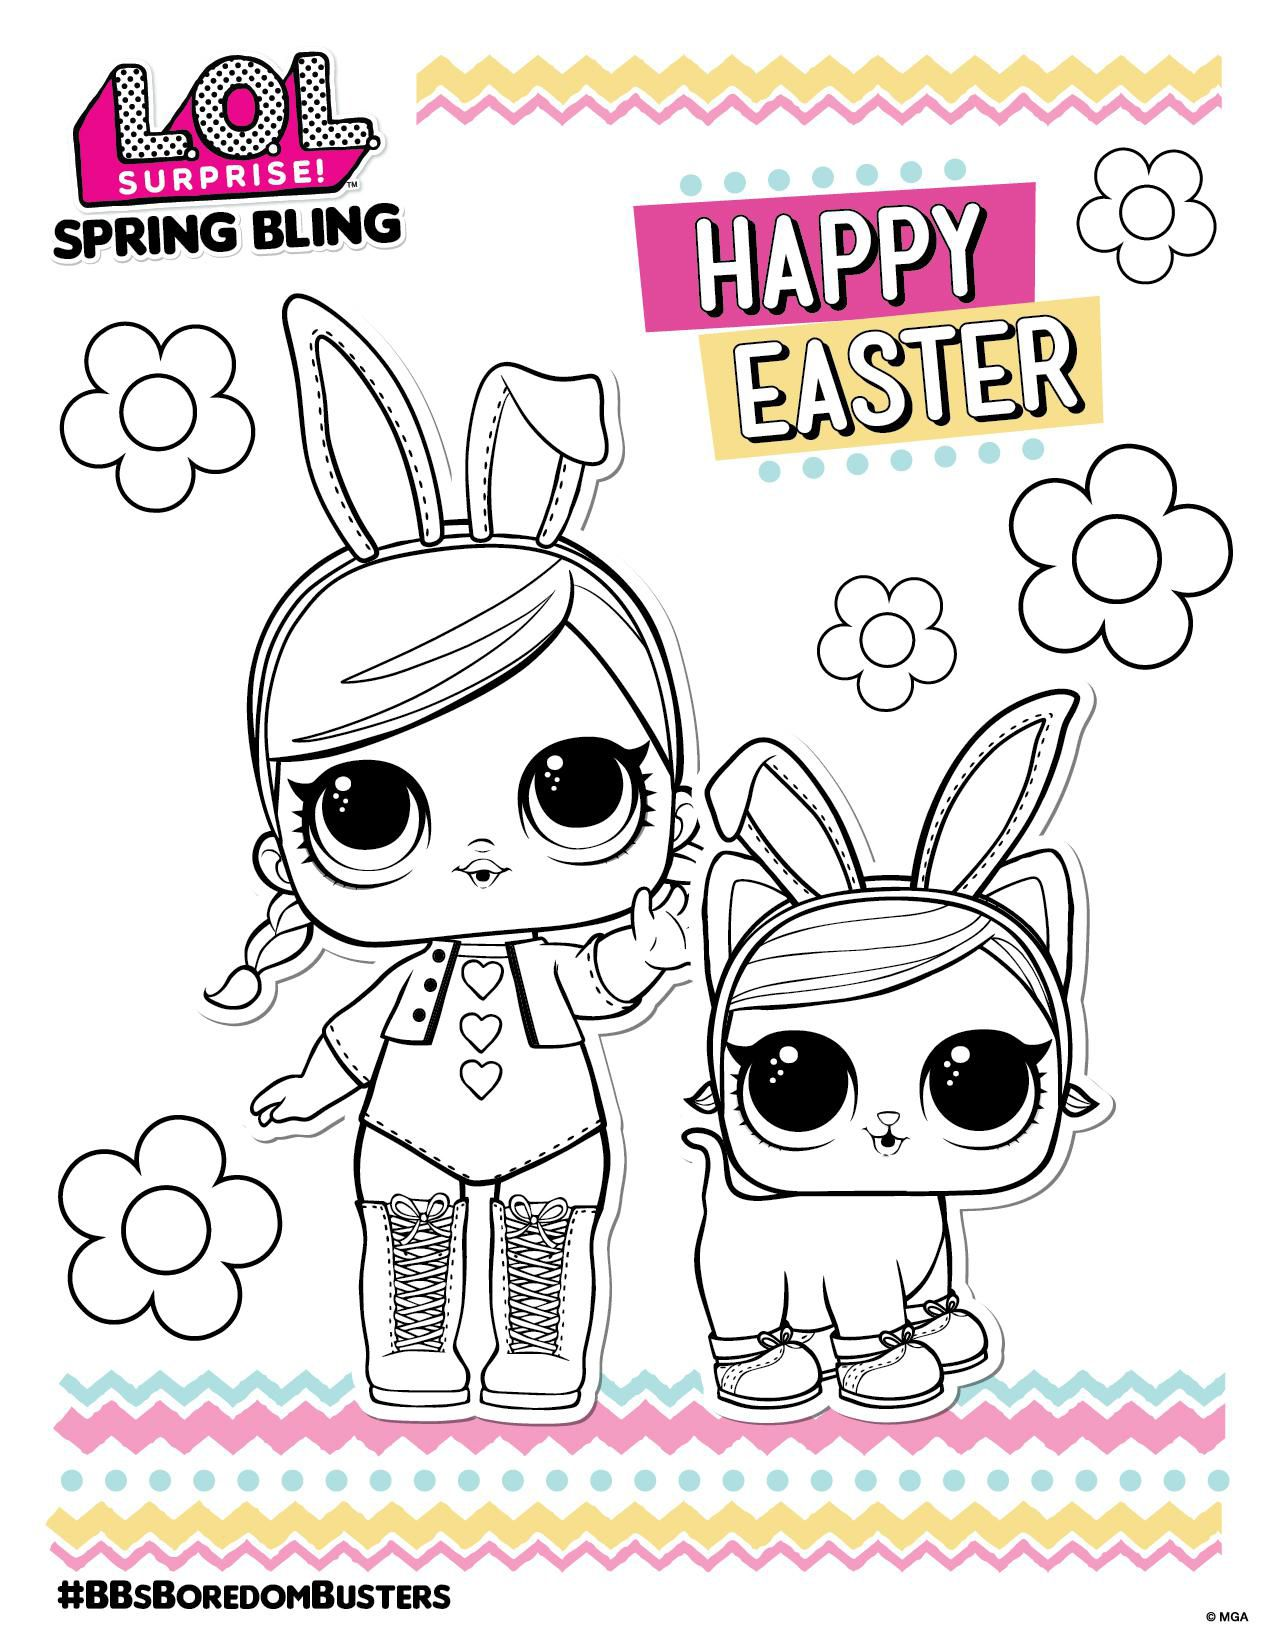 Lol Surprise Coloring Sheet Easter Coloring Sheets Coloring Sheets Coloring Pages For Girls